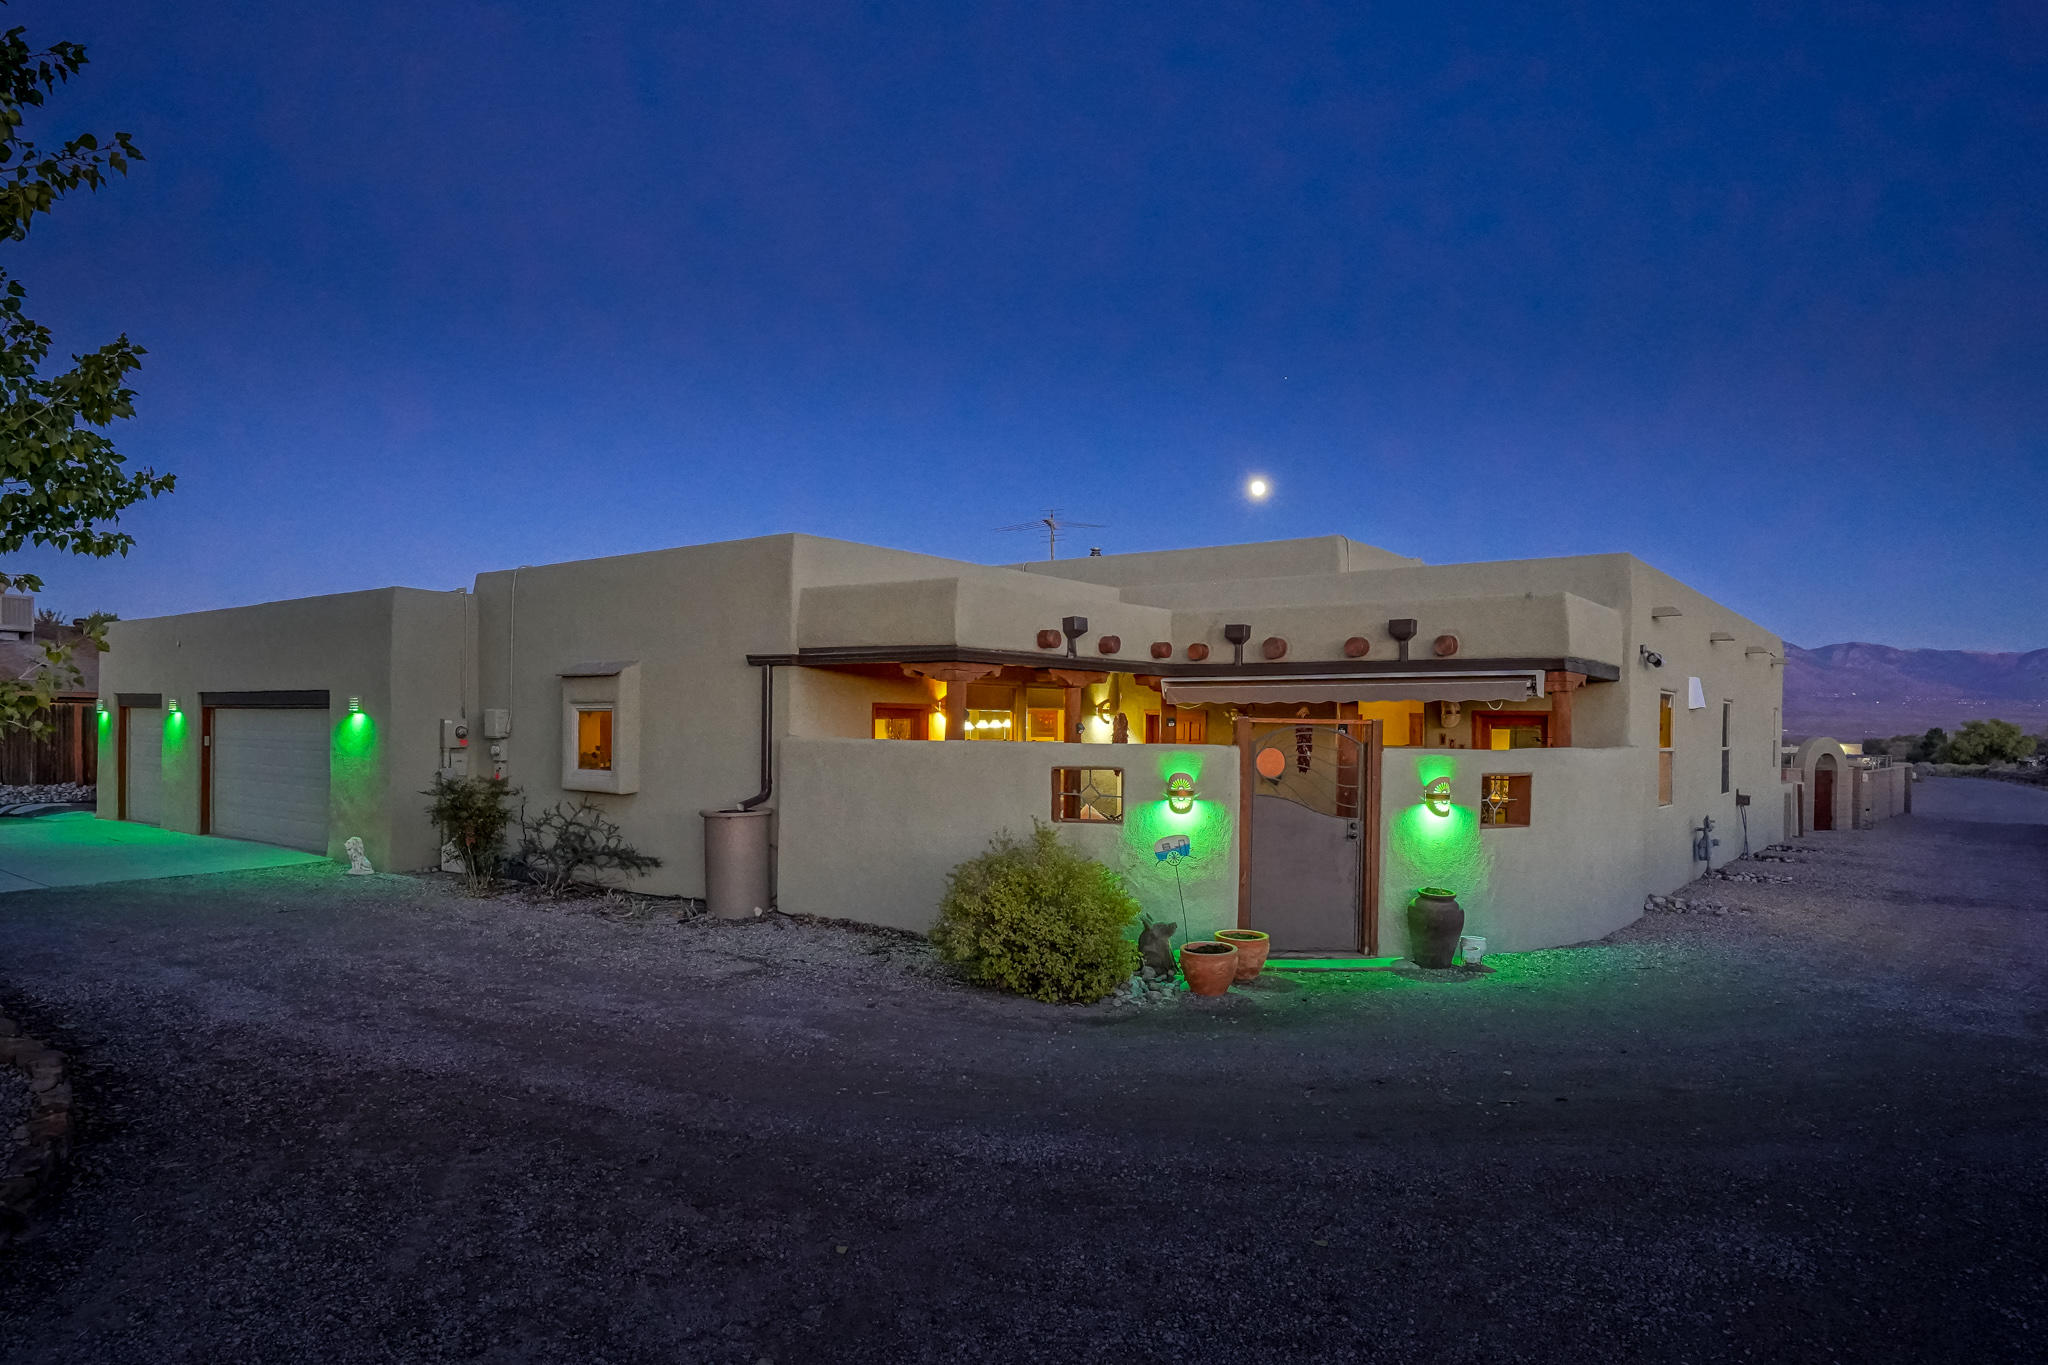 Come see this beautiful one story home with lovely curb appeal in Corrales. This southwest style home has OWNED SOLAR and features an inviting courtyard entry. The kitchen has pretty granite countertops and stainless appliances. The living room has beautiful wood beamed ceilings, tile flooring, a kiva fireplace, and a pellet stove to keep cozy on those cold days. There are dutch doors, skylights, and several private entrances. Through the backdoor is an amazing covered patio that leads into the backyard paradise with the most fantastic views. This incredible backyard is great for BBQ's or just relaxing on a cool NM evening. There are 4 bedrooms, 3 bathrooms, an oversized 3 car garage with a workshop area, RV pad, plus a bonus climate controlled room for groceries or added storage.